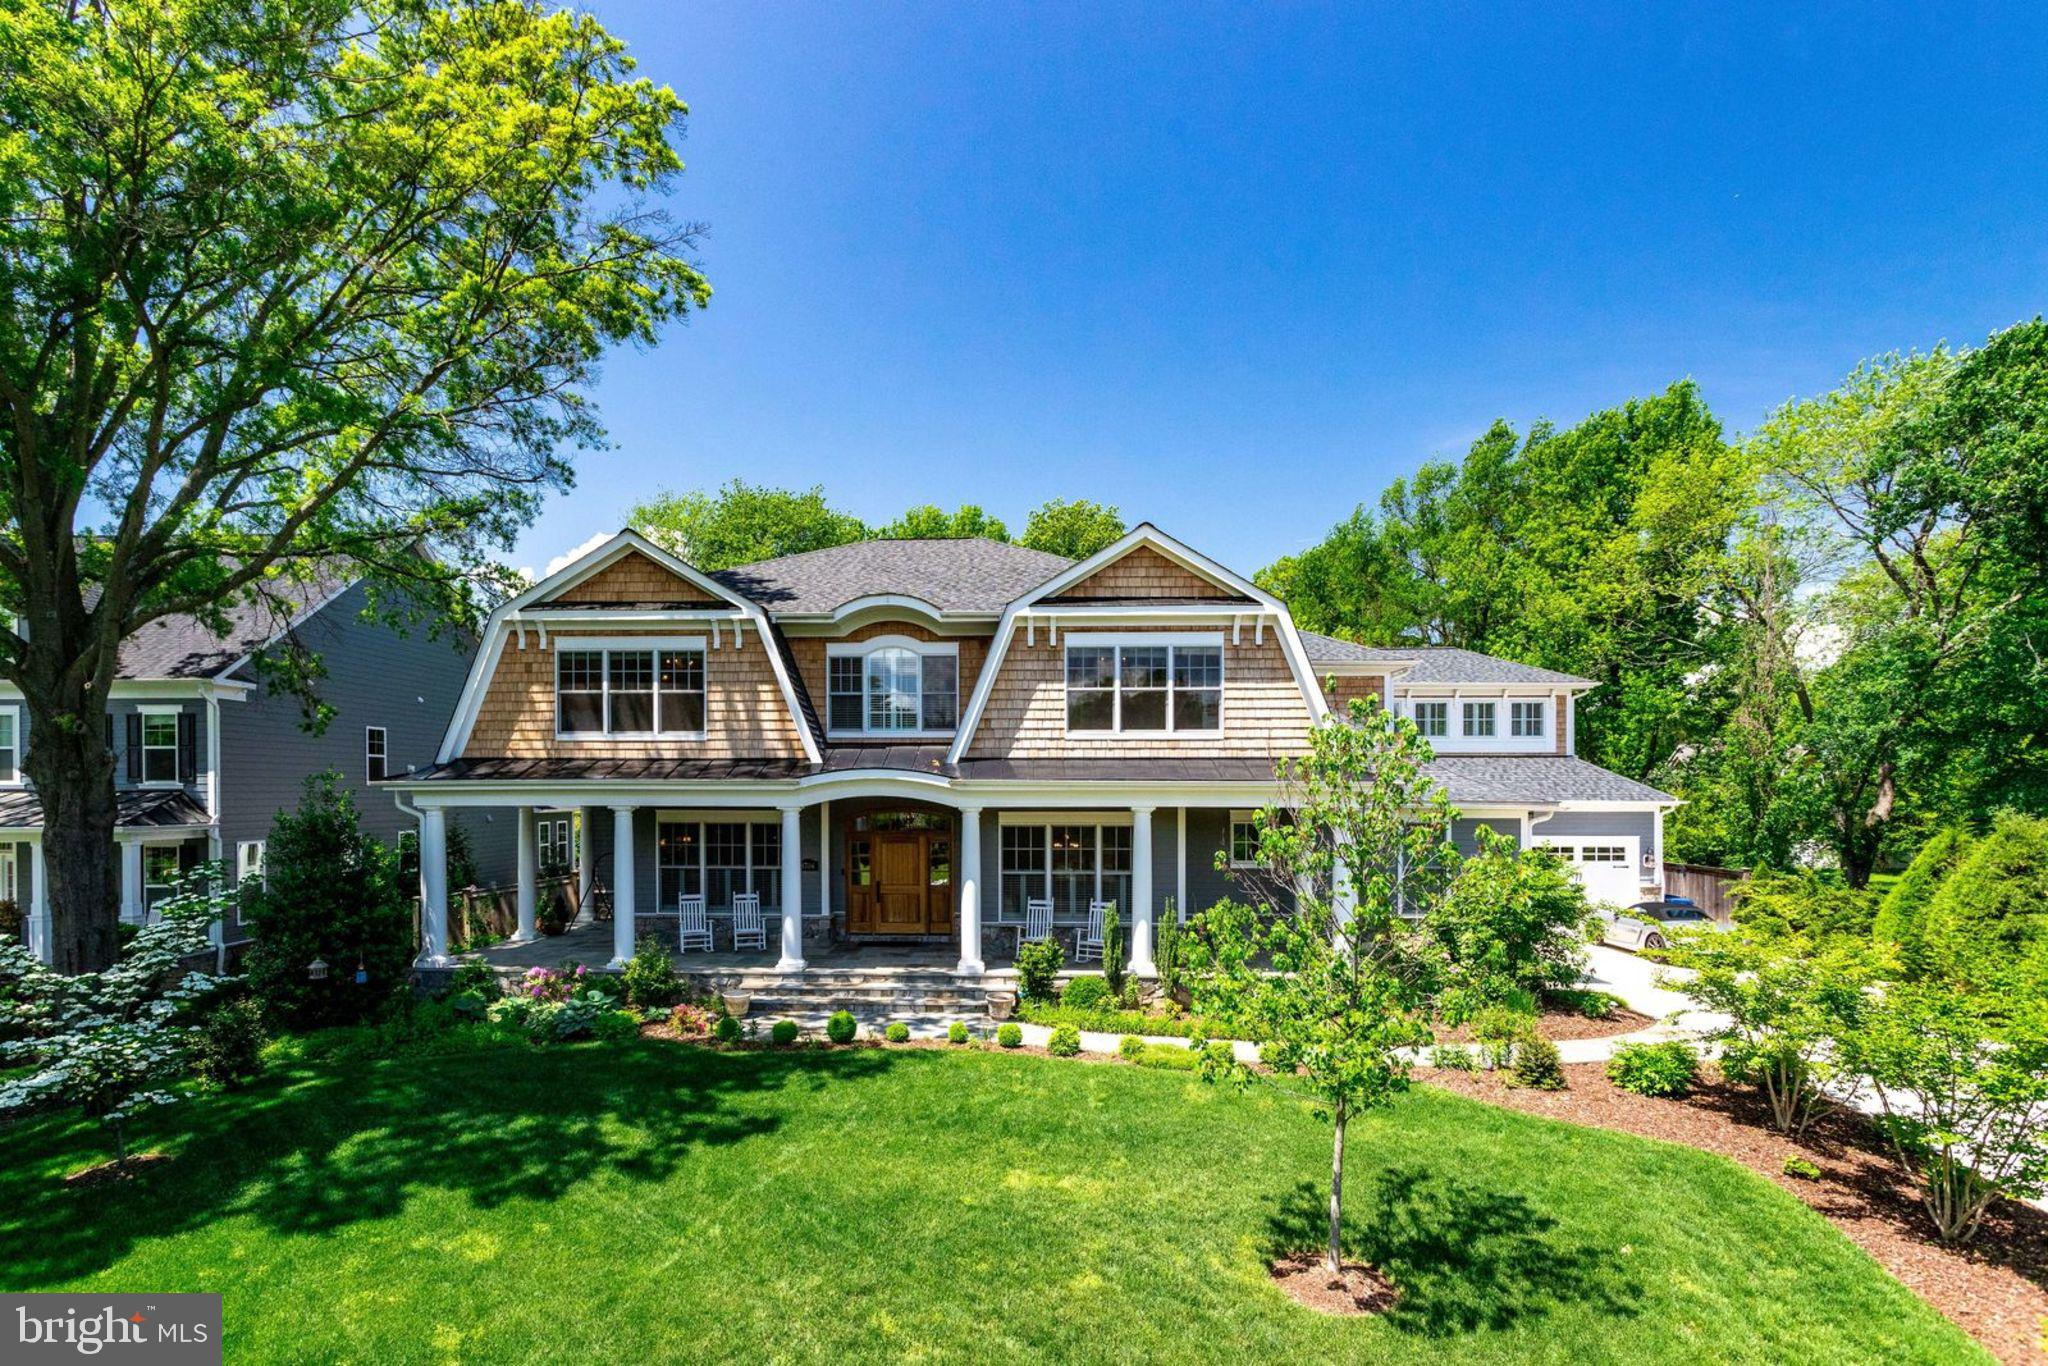 Custom built home with incomparable quality.  From the exquiste moldings to the custom cabinetry and walk in wine cellar.  Nothing like it in the area.  Sitting on 2/3 acre, the home encompasses Nantucket with its custom exterior and large well ppointed rooms.